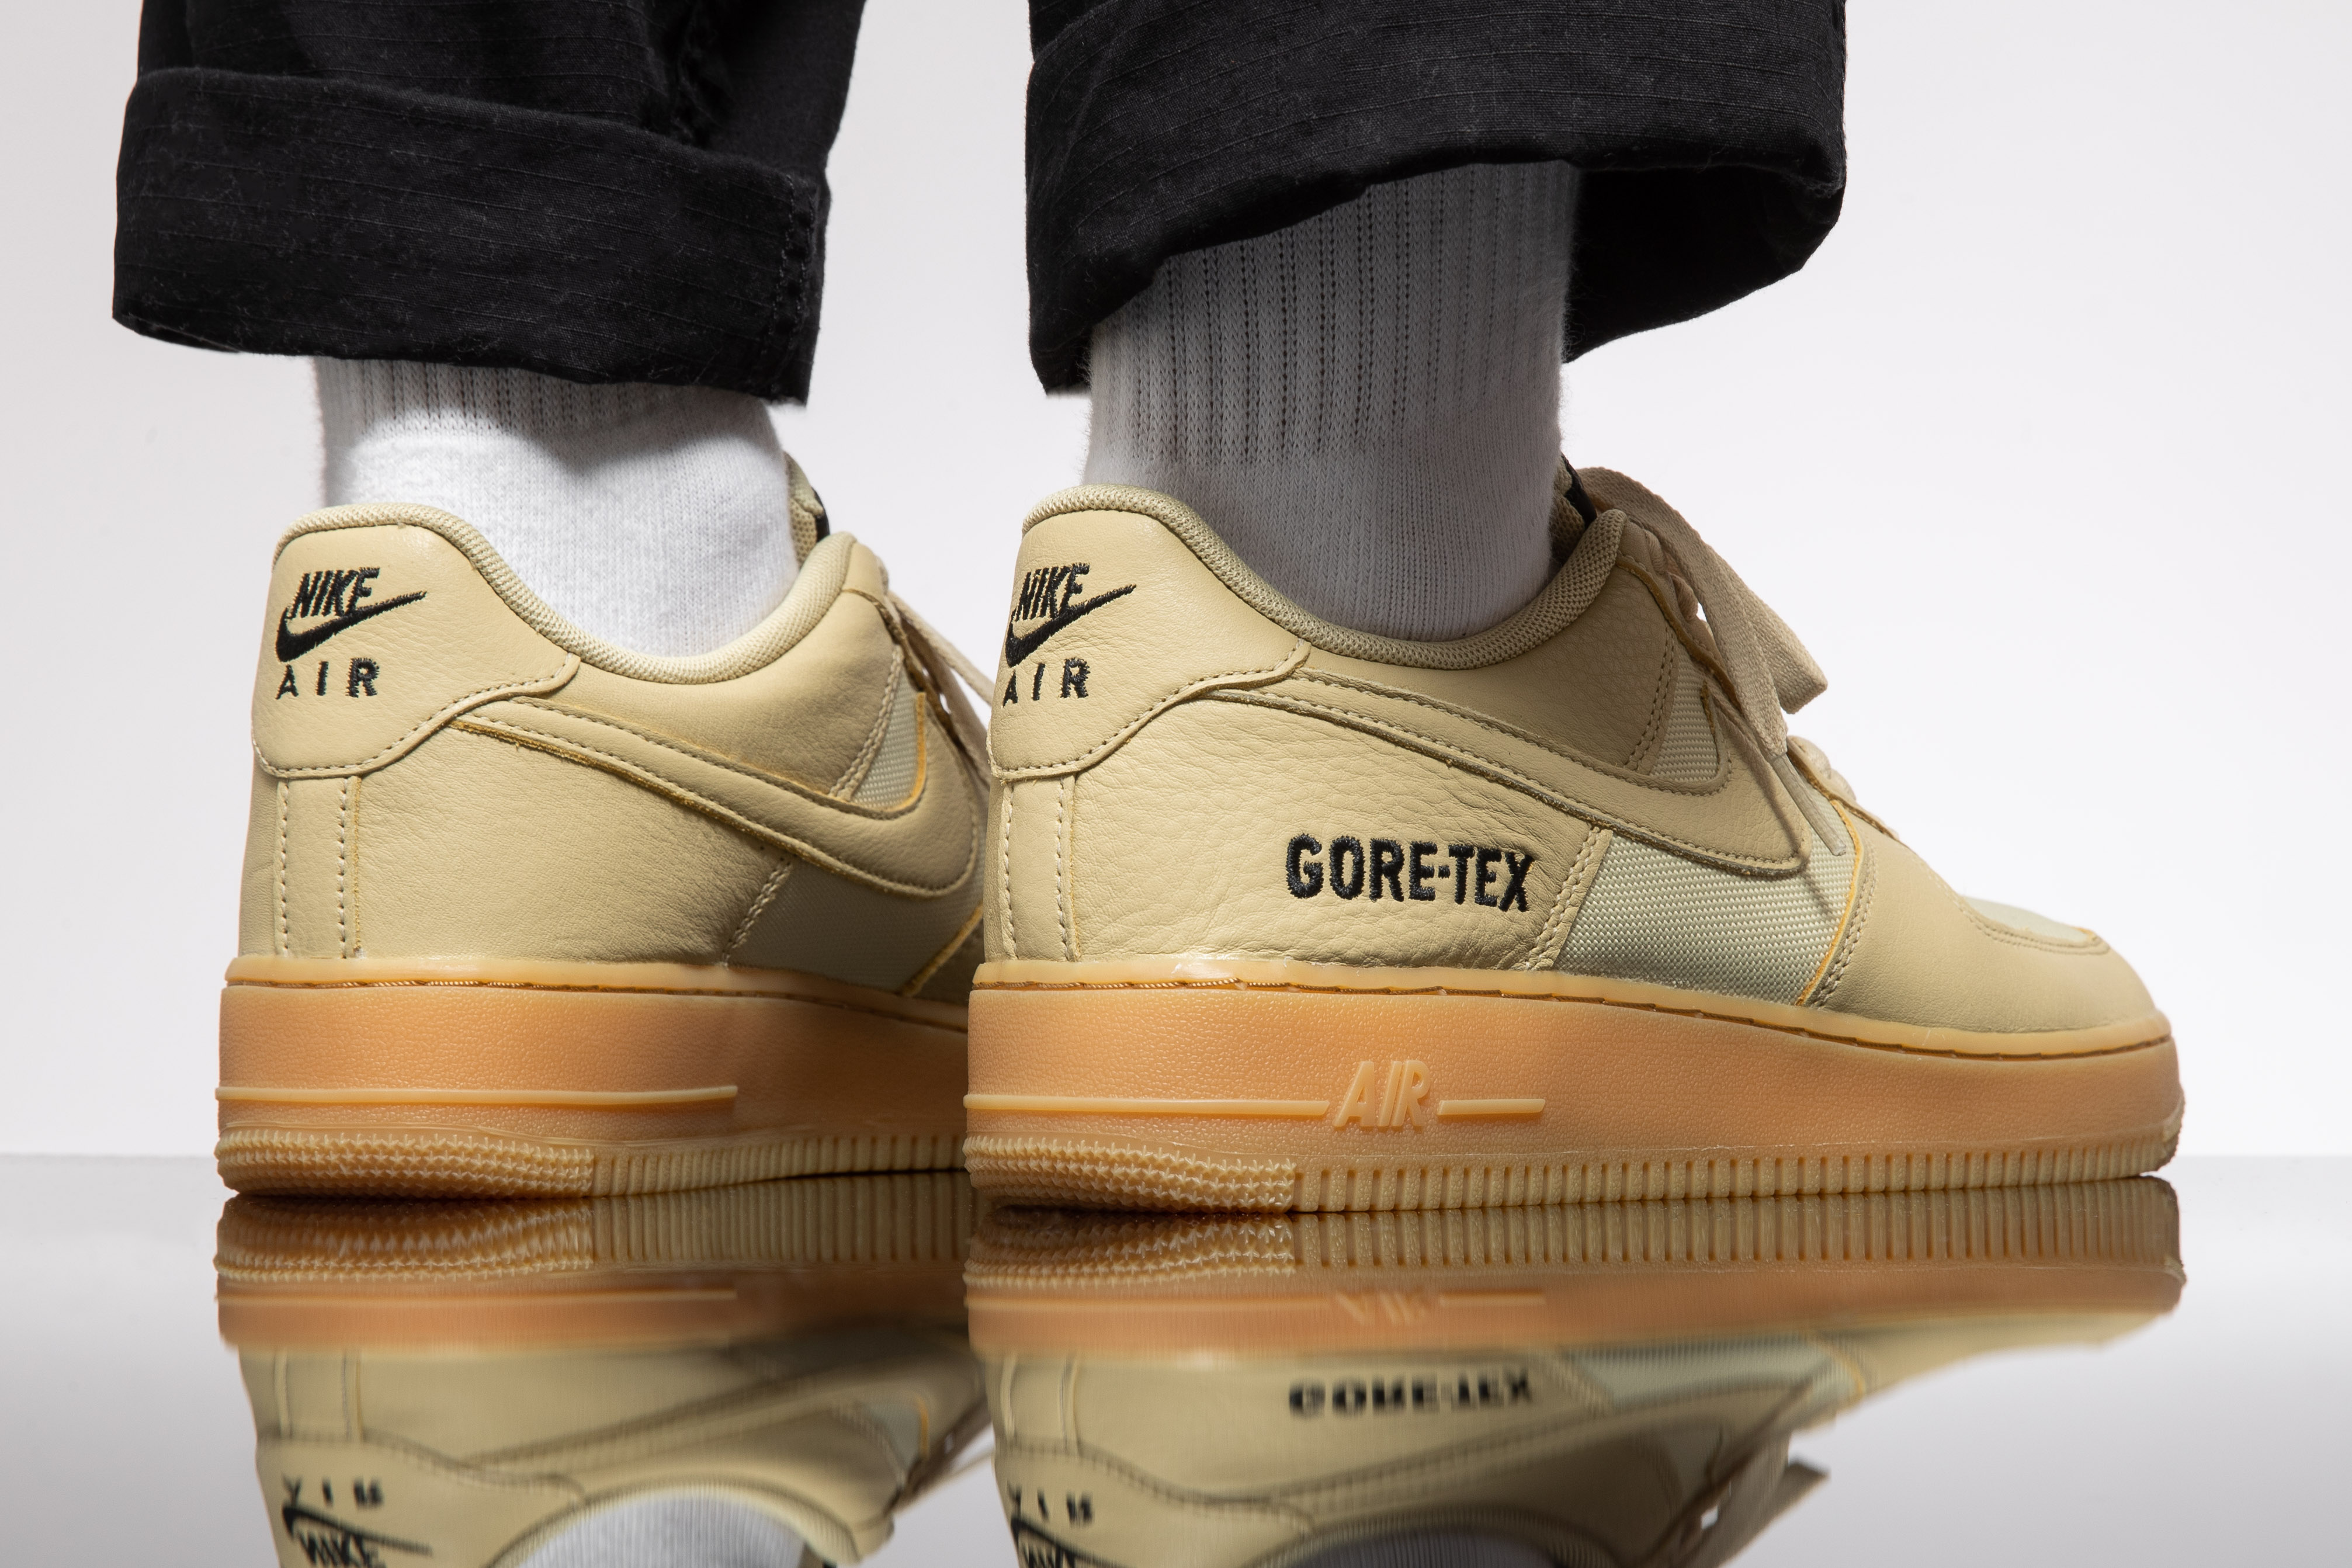 Nike Air Force 1 Low GTX: Two Gum Soled Colorways EUKICKS